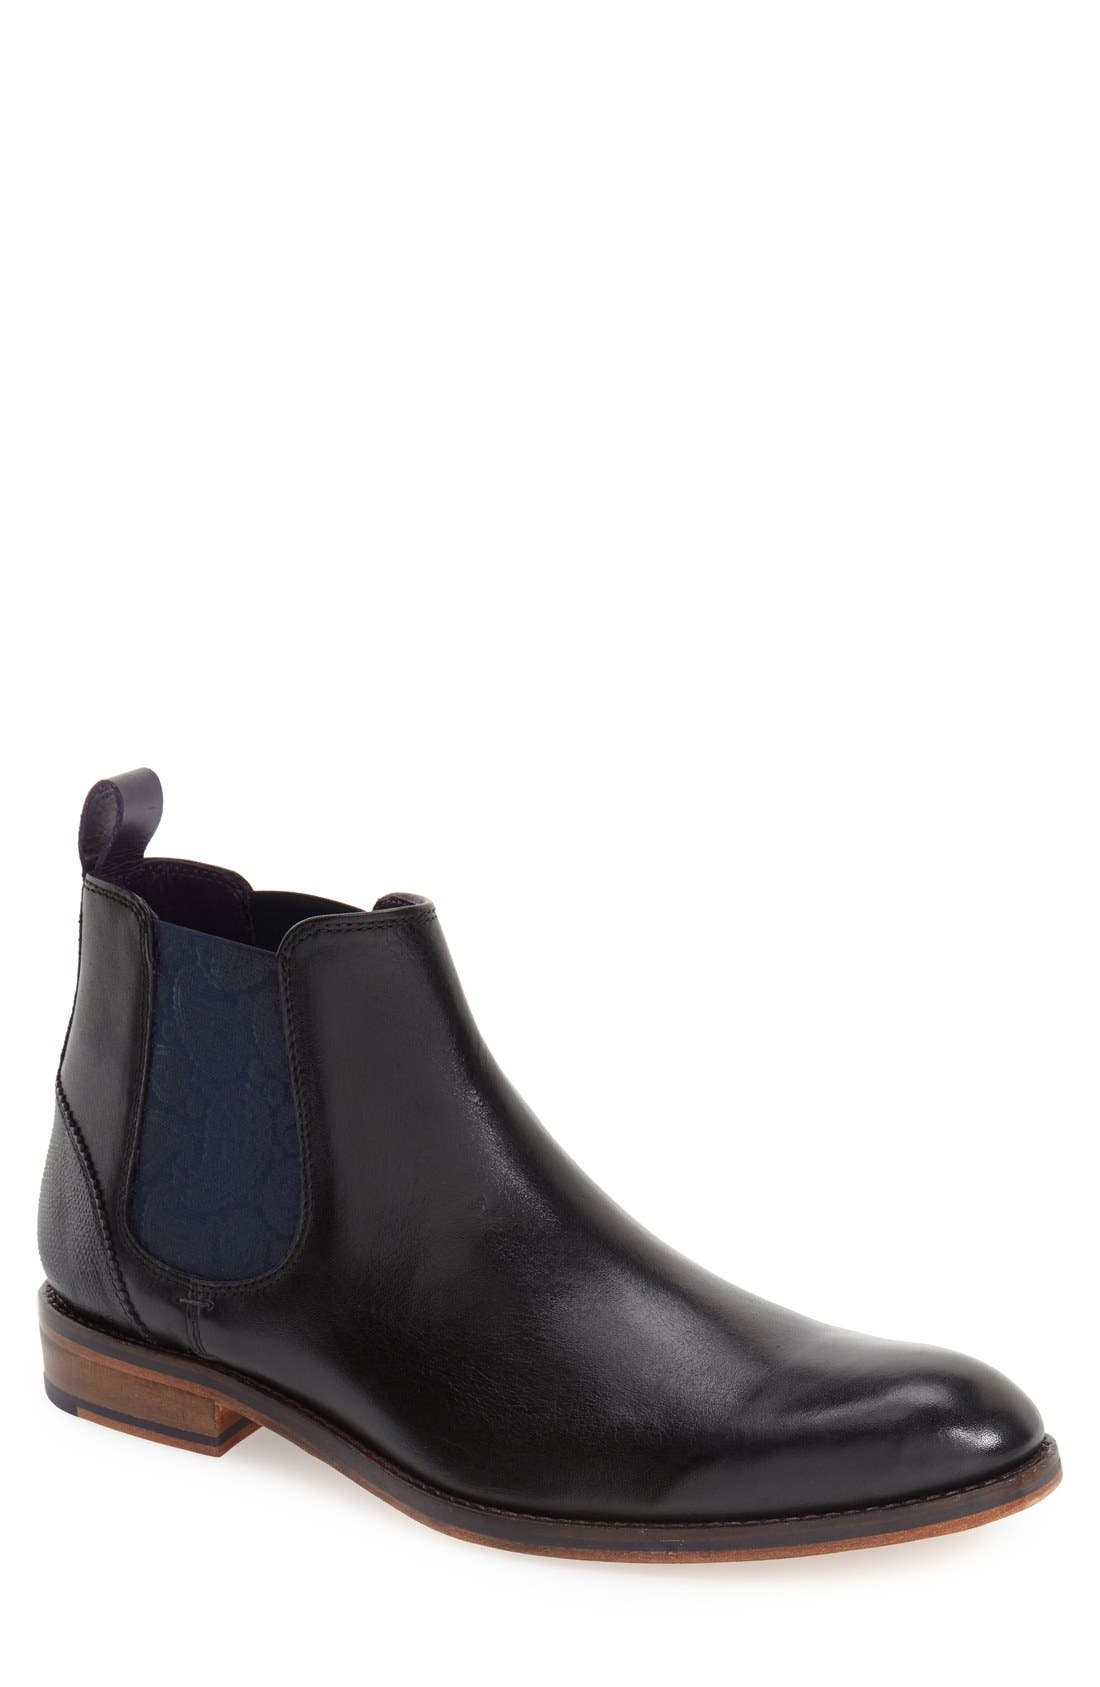 'Camroon 4' Chelsea Boot,                         Main,                         color, Black Leather